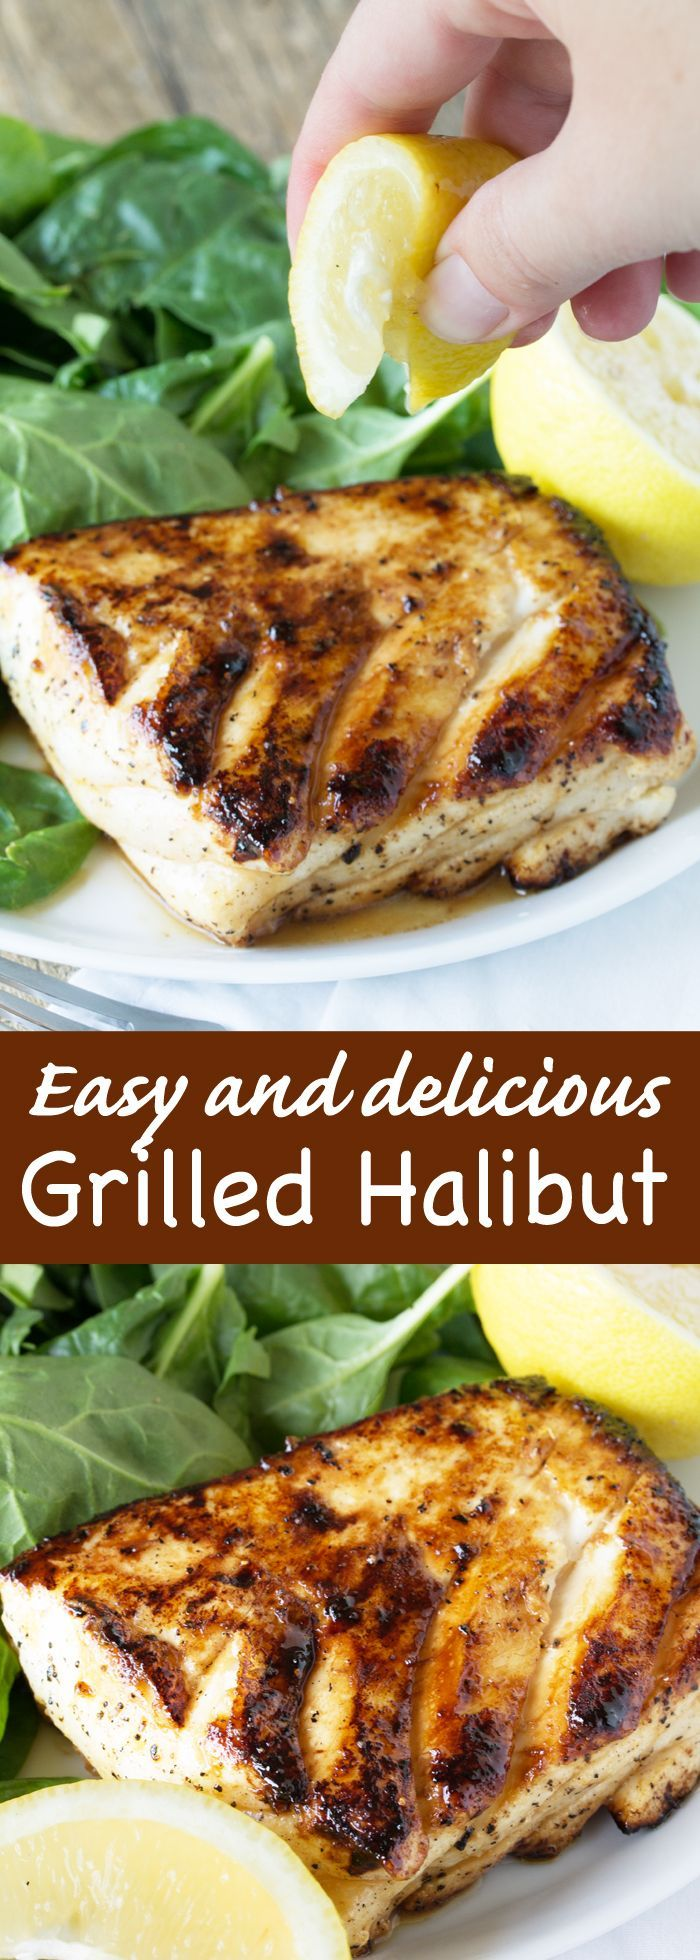 Freshwater fish england - Enjoy A Healthy And Delicious Meal Ready In Just Minutes Easy And Delicious Grilled Halibut